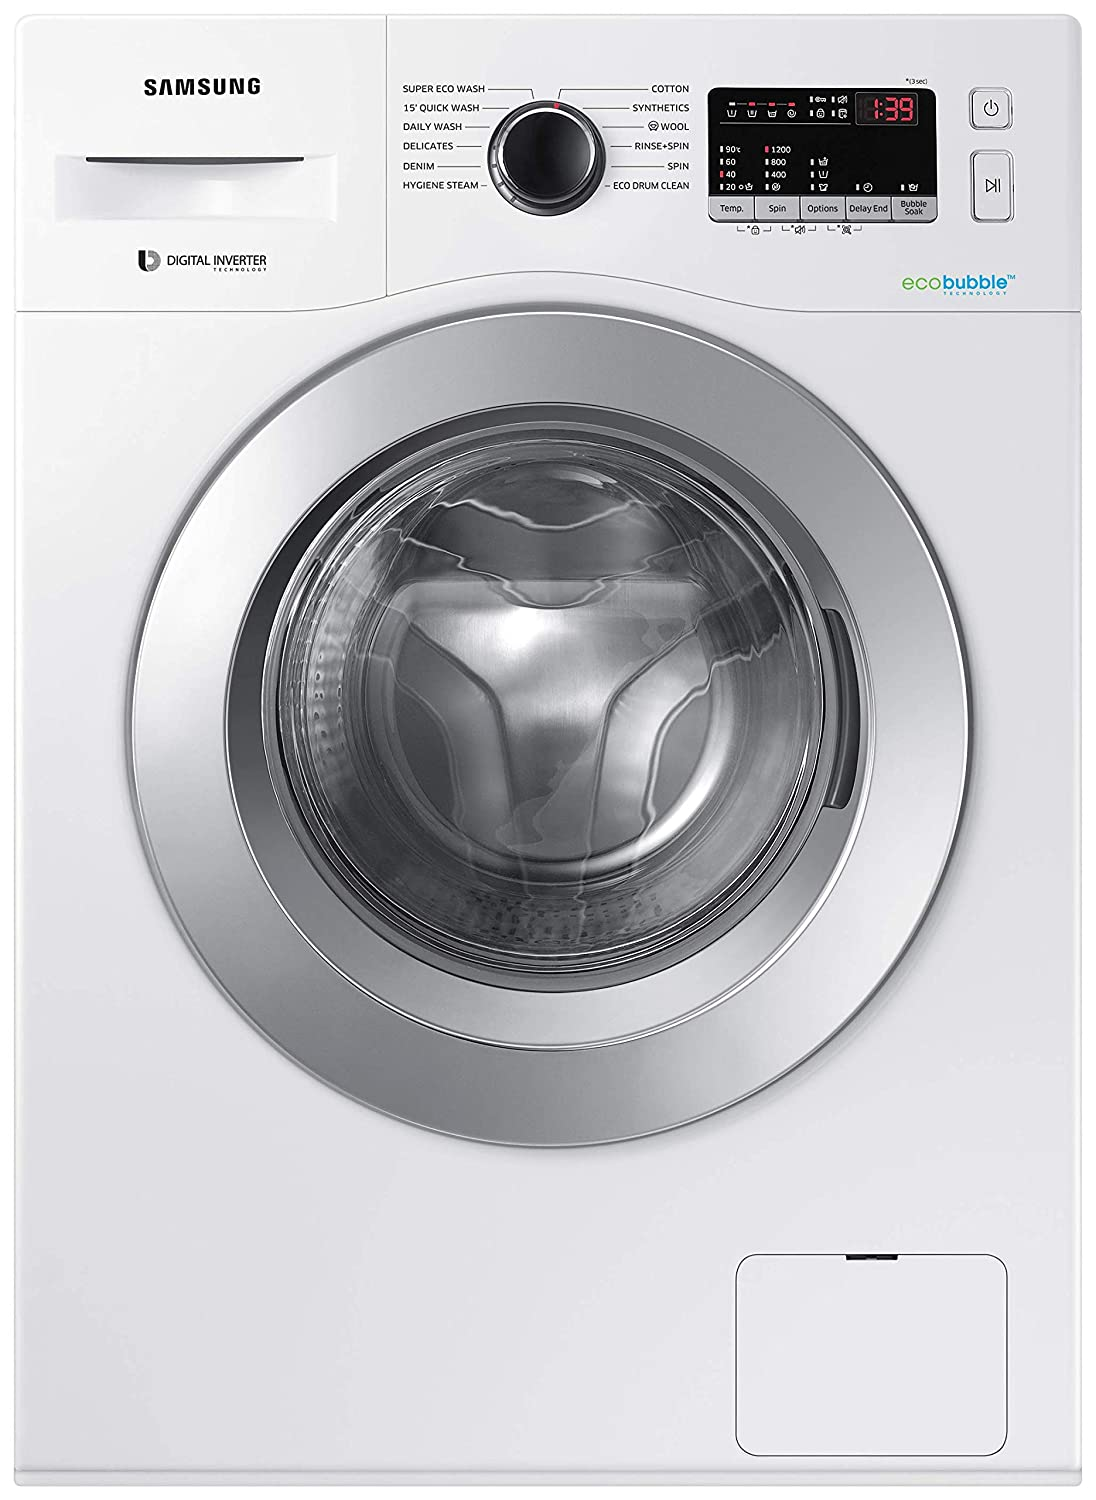 Samsung 7 Kg 5 Star Inverter Fully-Automatic Front Loading Washing Machine